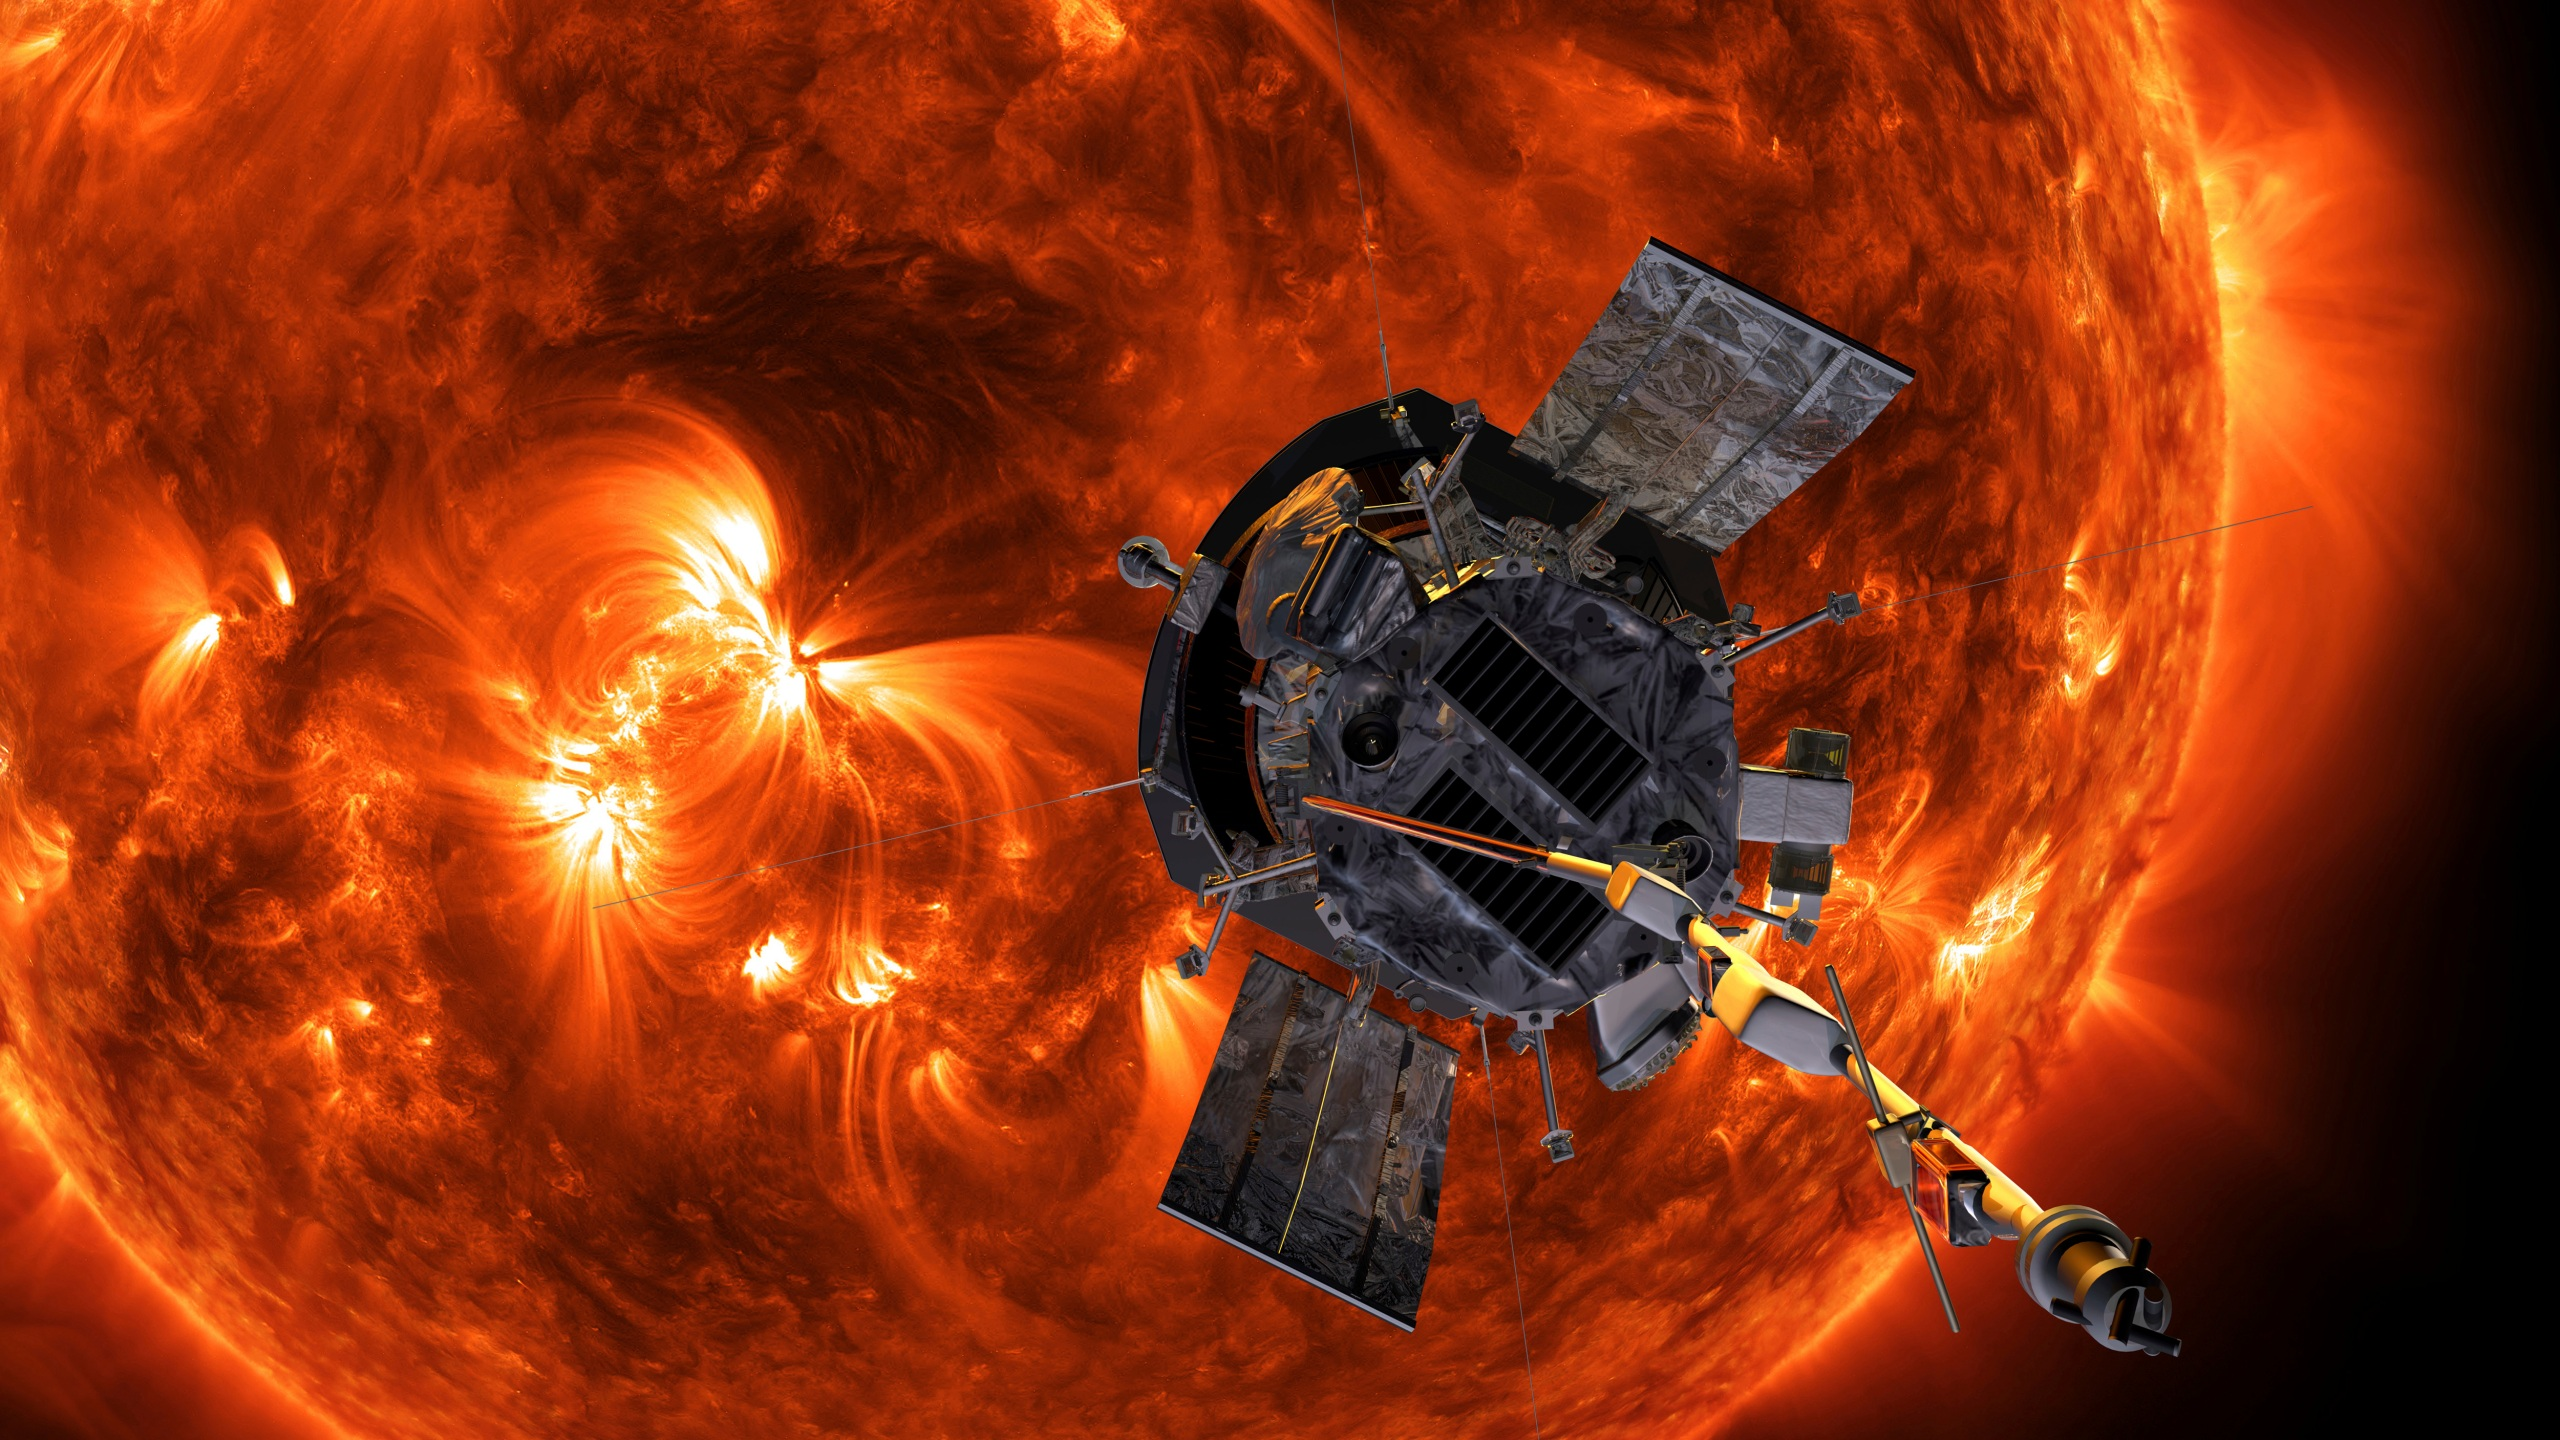 Space_Close_To_The_Sun_50041-159532.jpg78146548